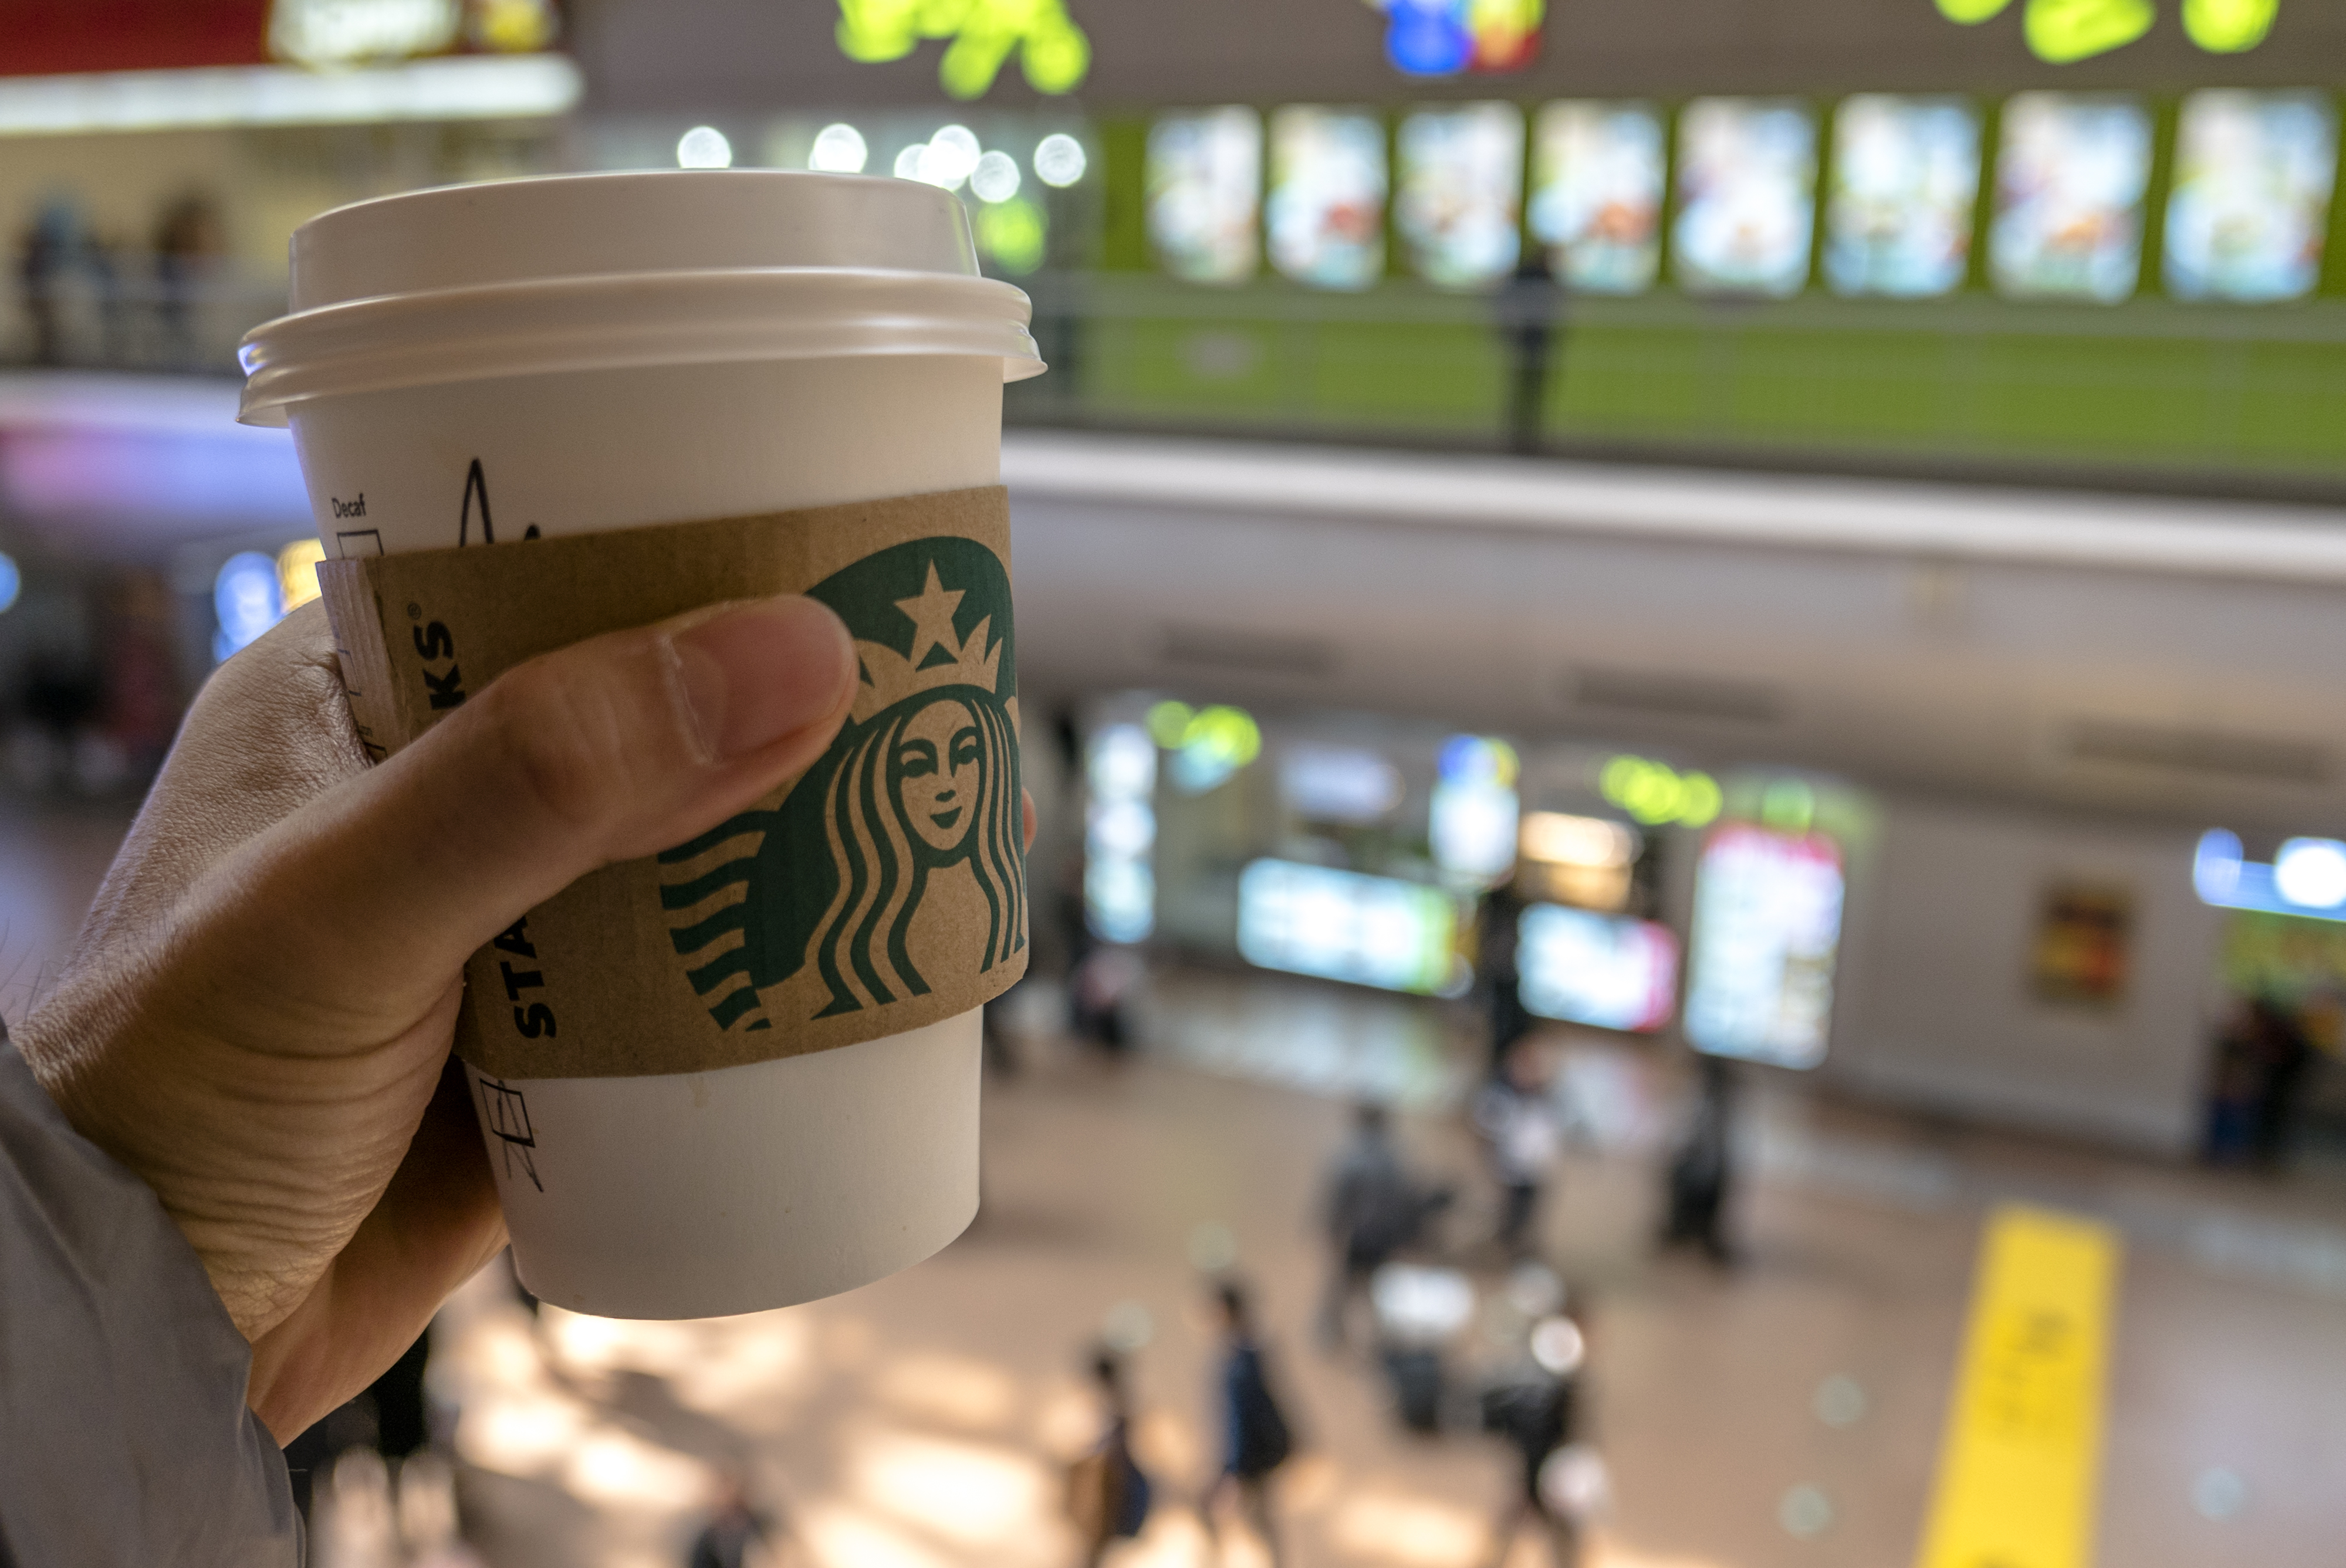 Hand holding a Starbucks coffee cup in a shopping area.